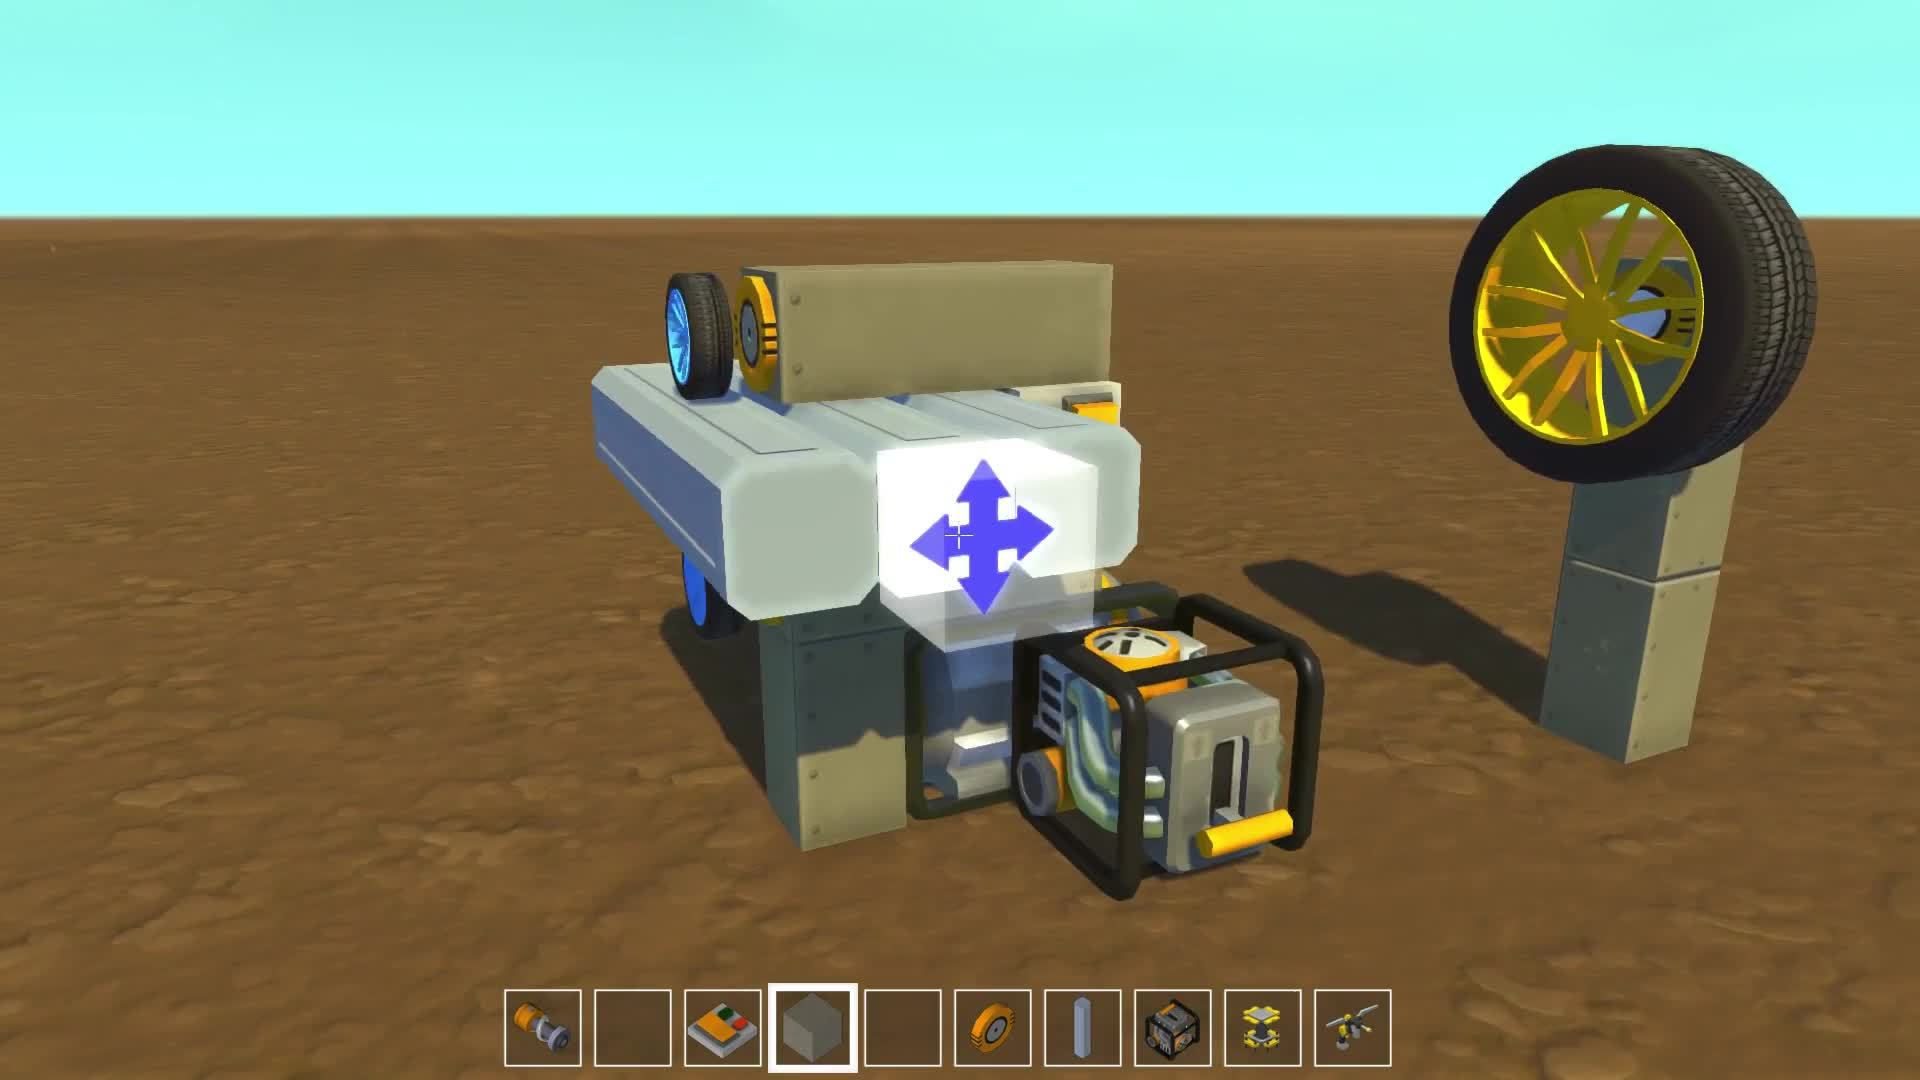 scrapmechanic, Tiny Wheels GIFs